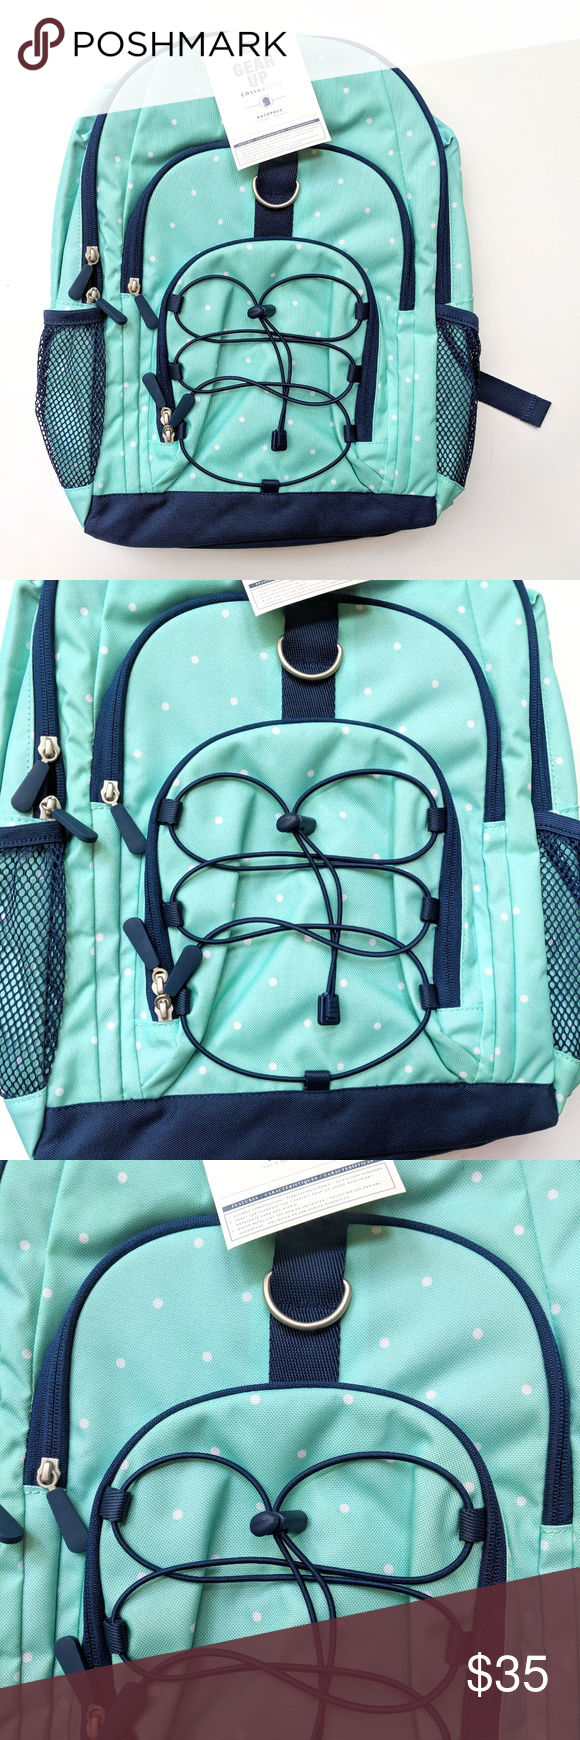 Pottery barn teen aqua navy girls backpack pottery barn teen aqua navy blue girls  backpack size 190c5cad23